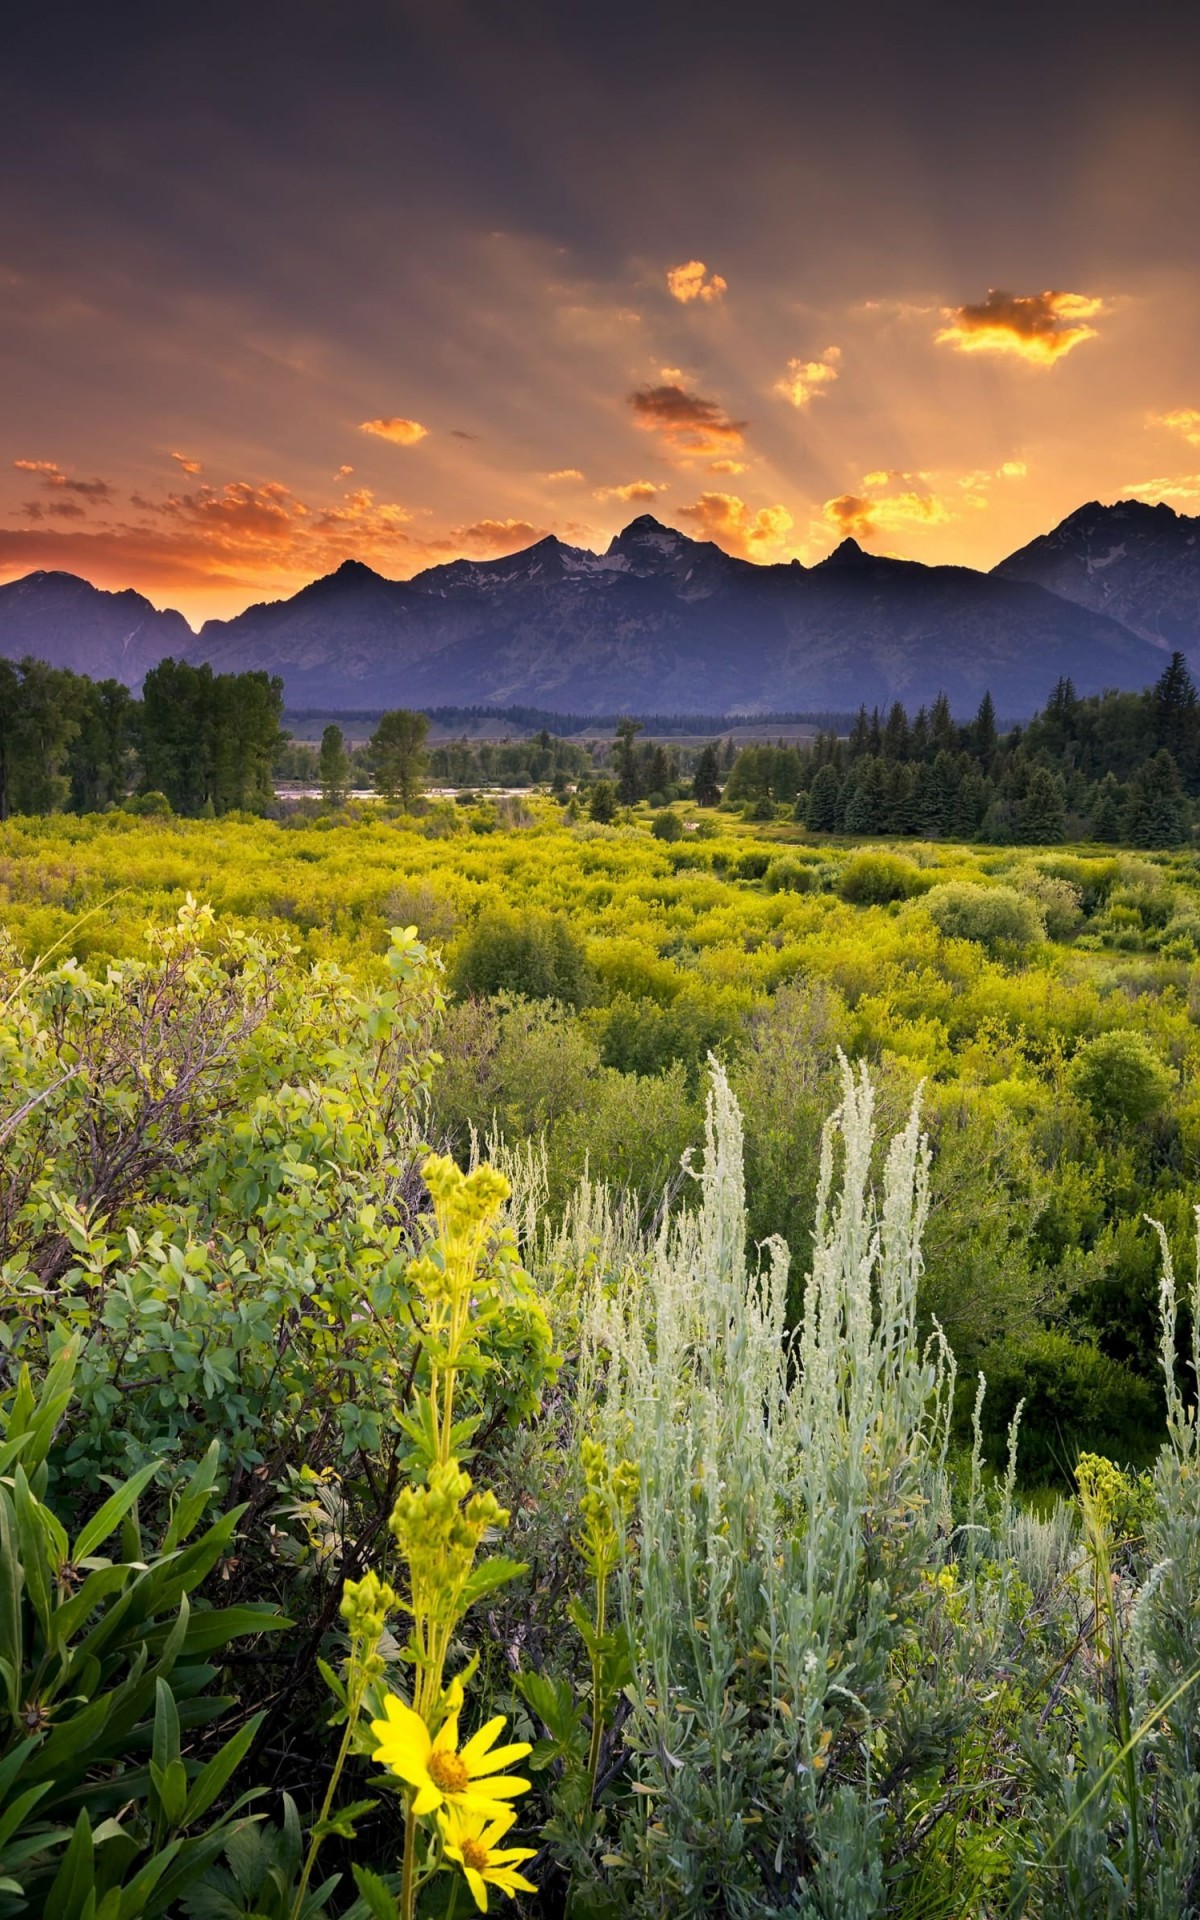 Sunset in Grand Teton National Park Wallpaper for Amazon Kindle Fire HDX